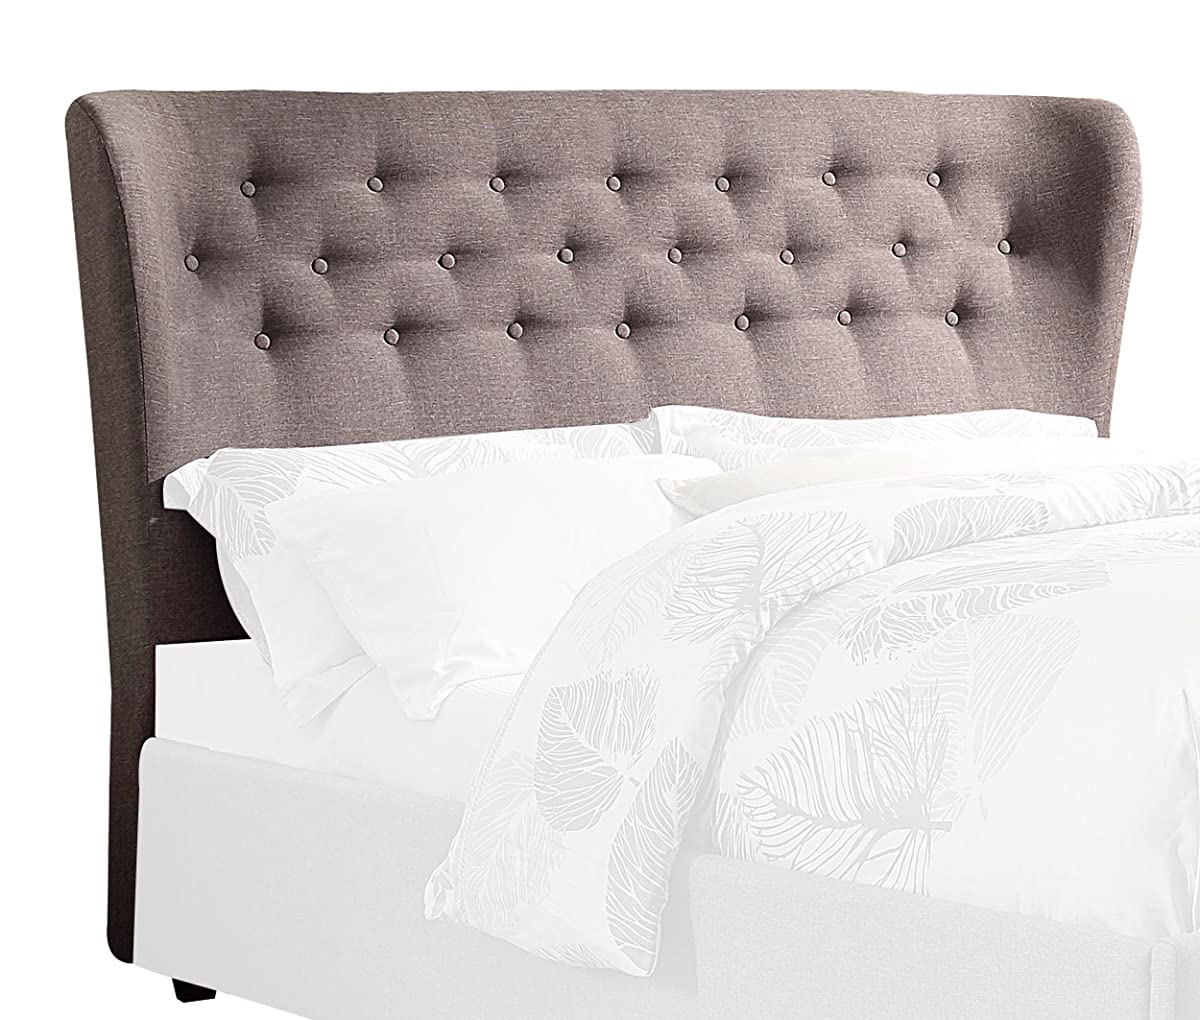 Homelegance Wade Button Tufted Upholstered Wing Headboard, Grey, Queen